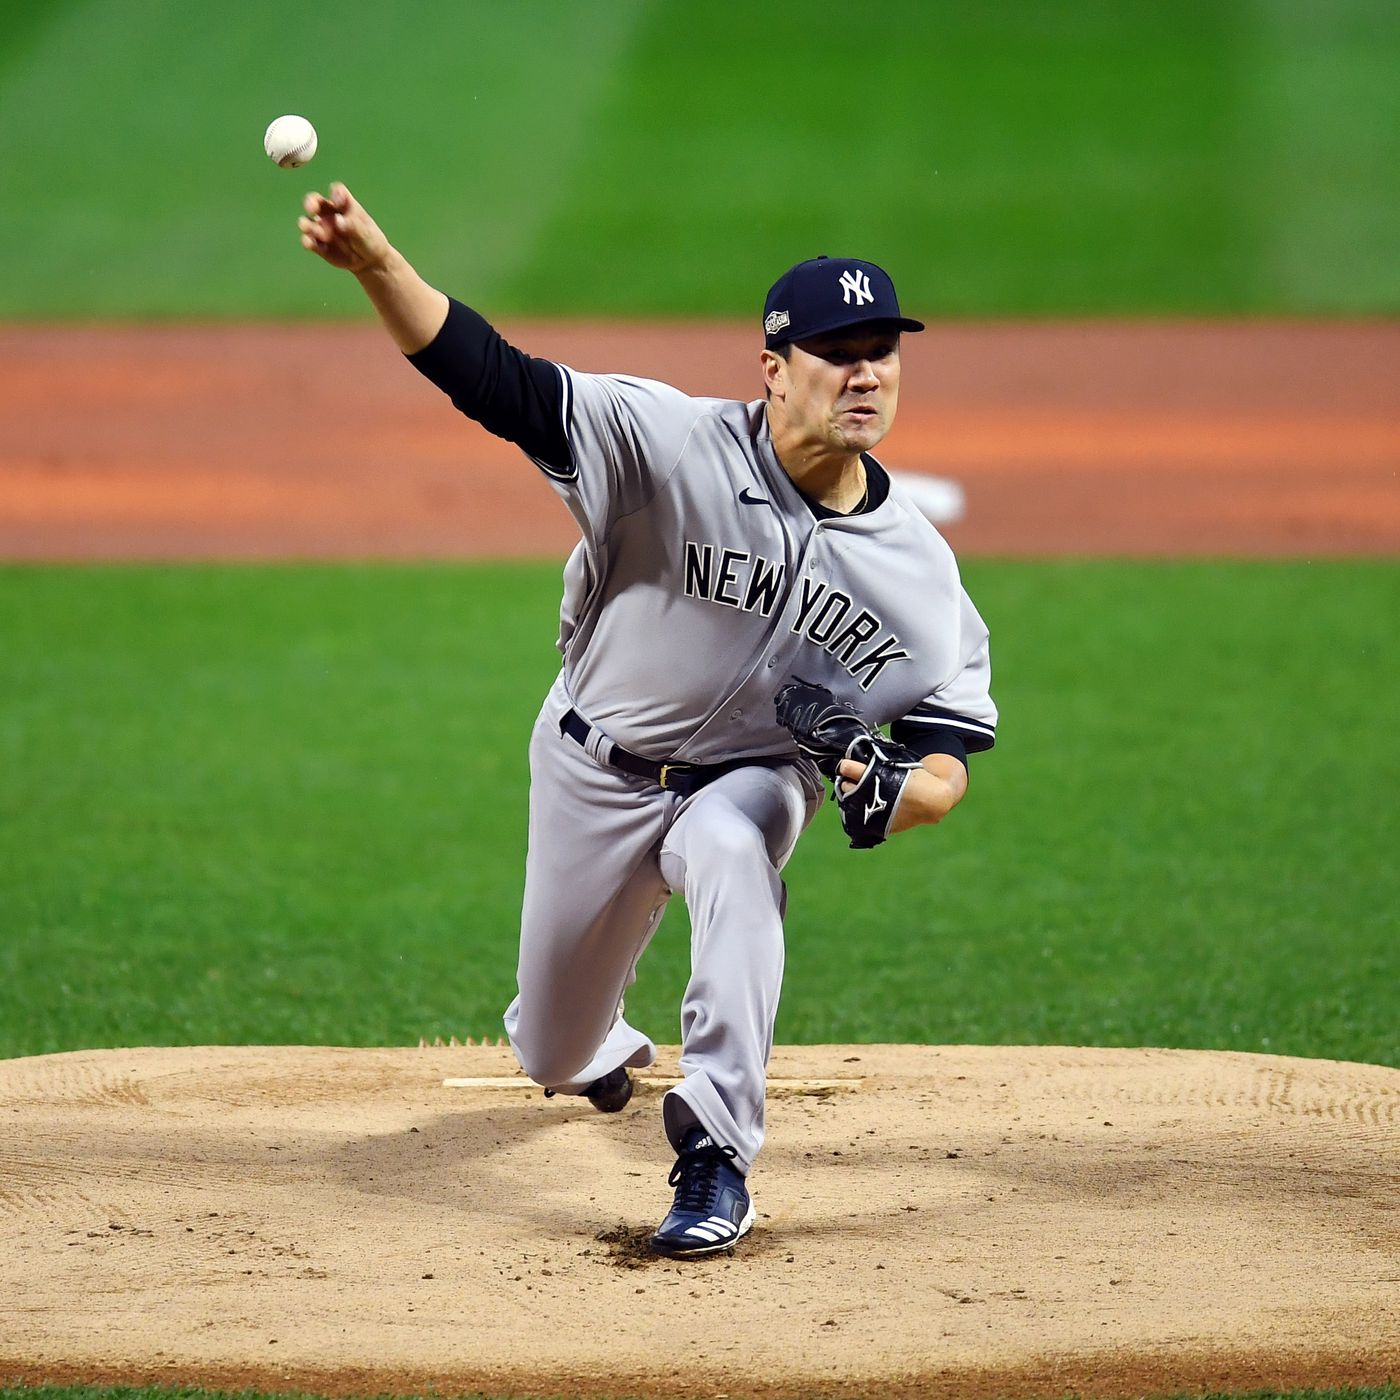 yankees vs rays alds game 3 lineups how to watch pinstripe alley yankees vs rays alds game 3 lineups